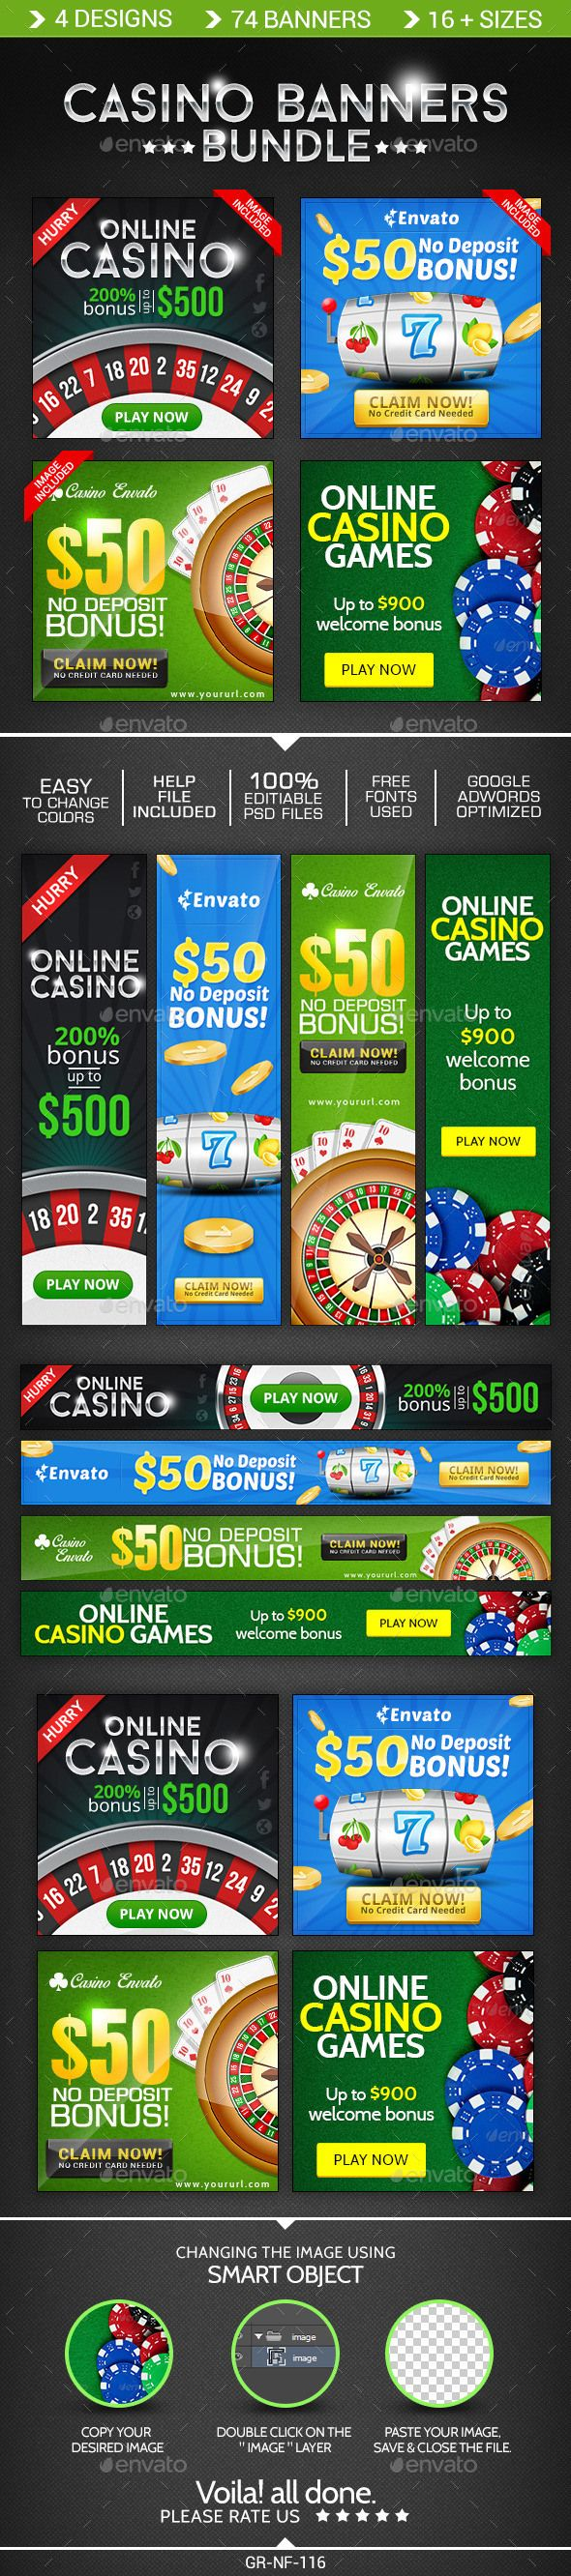 Casino Banner Design Bundle helps in promoting your Products and services related to casino & Gambling. The package also comes with a help file & Editable PSDs.